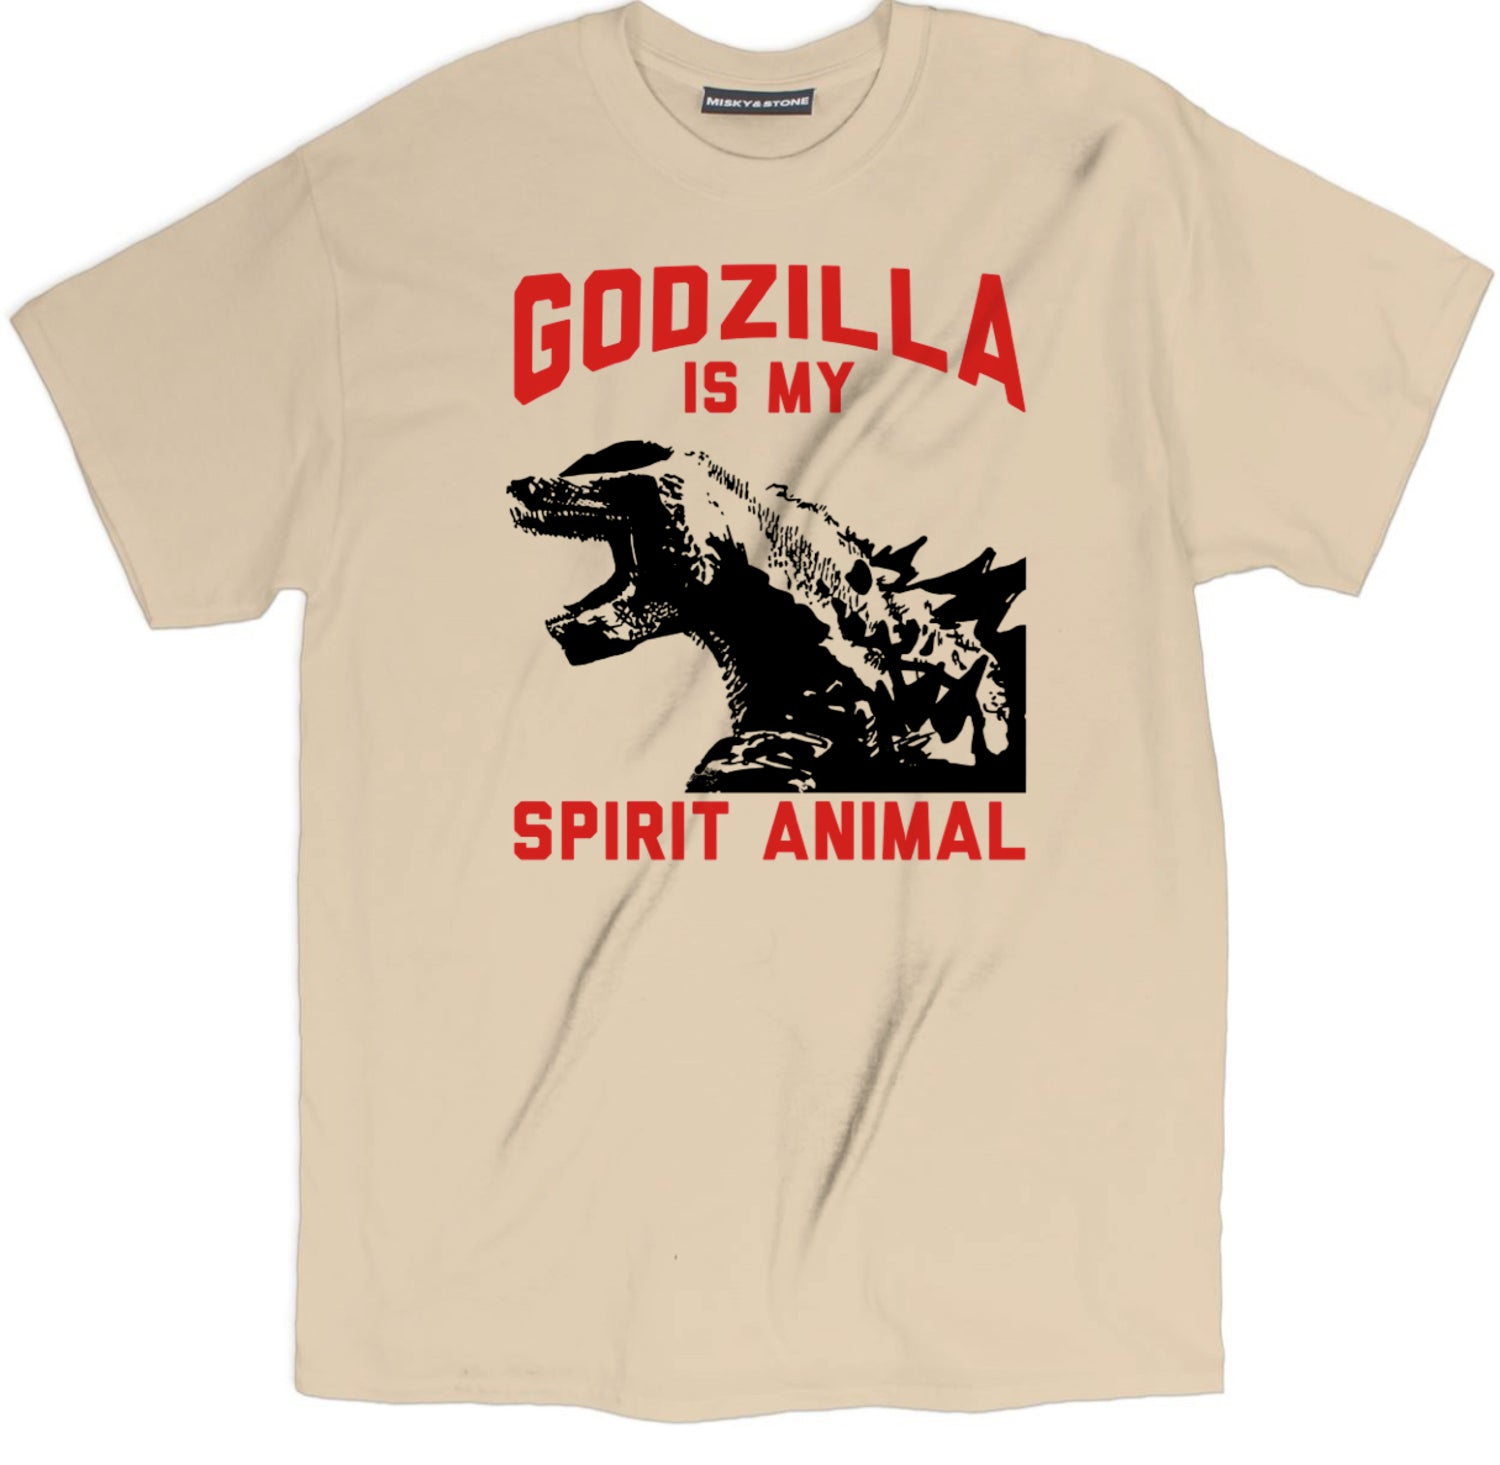 Godzilla Is My Spirit Animal roaring tee, Godzilla Is My Spirit Animal retro tee, godzilla savagetee, godzilla t shirt, godzilla shirt, godzilla tee shirt, godzilla clothing, godzilla apparel, godzilla merch, godzilla merchandise, movie tee shirts